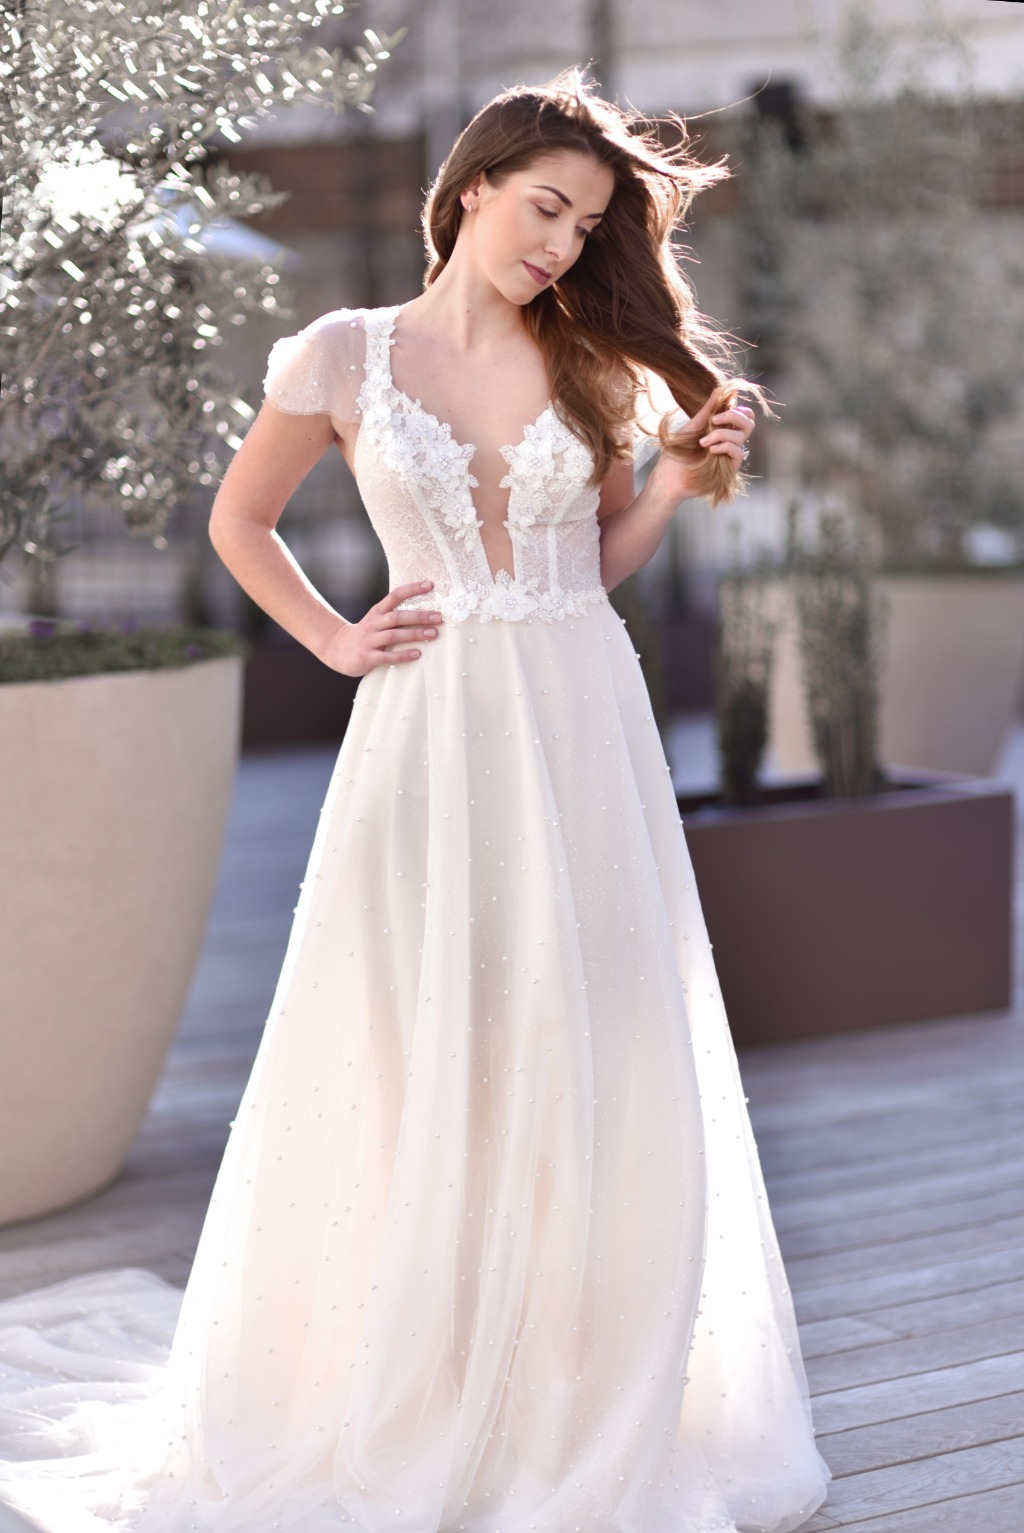 Gorgeous wedding dress by Valeri Bridal available at Diamond Bridal Gallery. Book your appointment today 916.521.9856